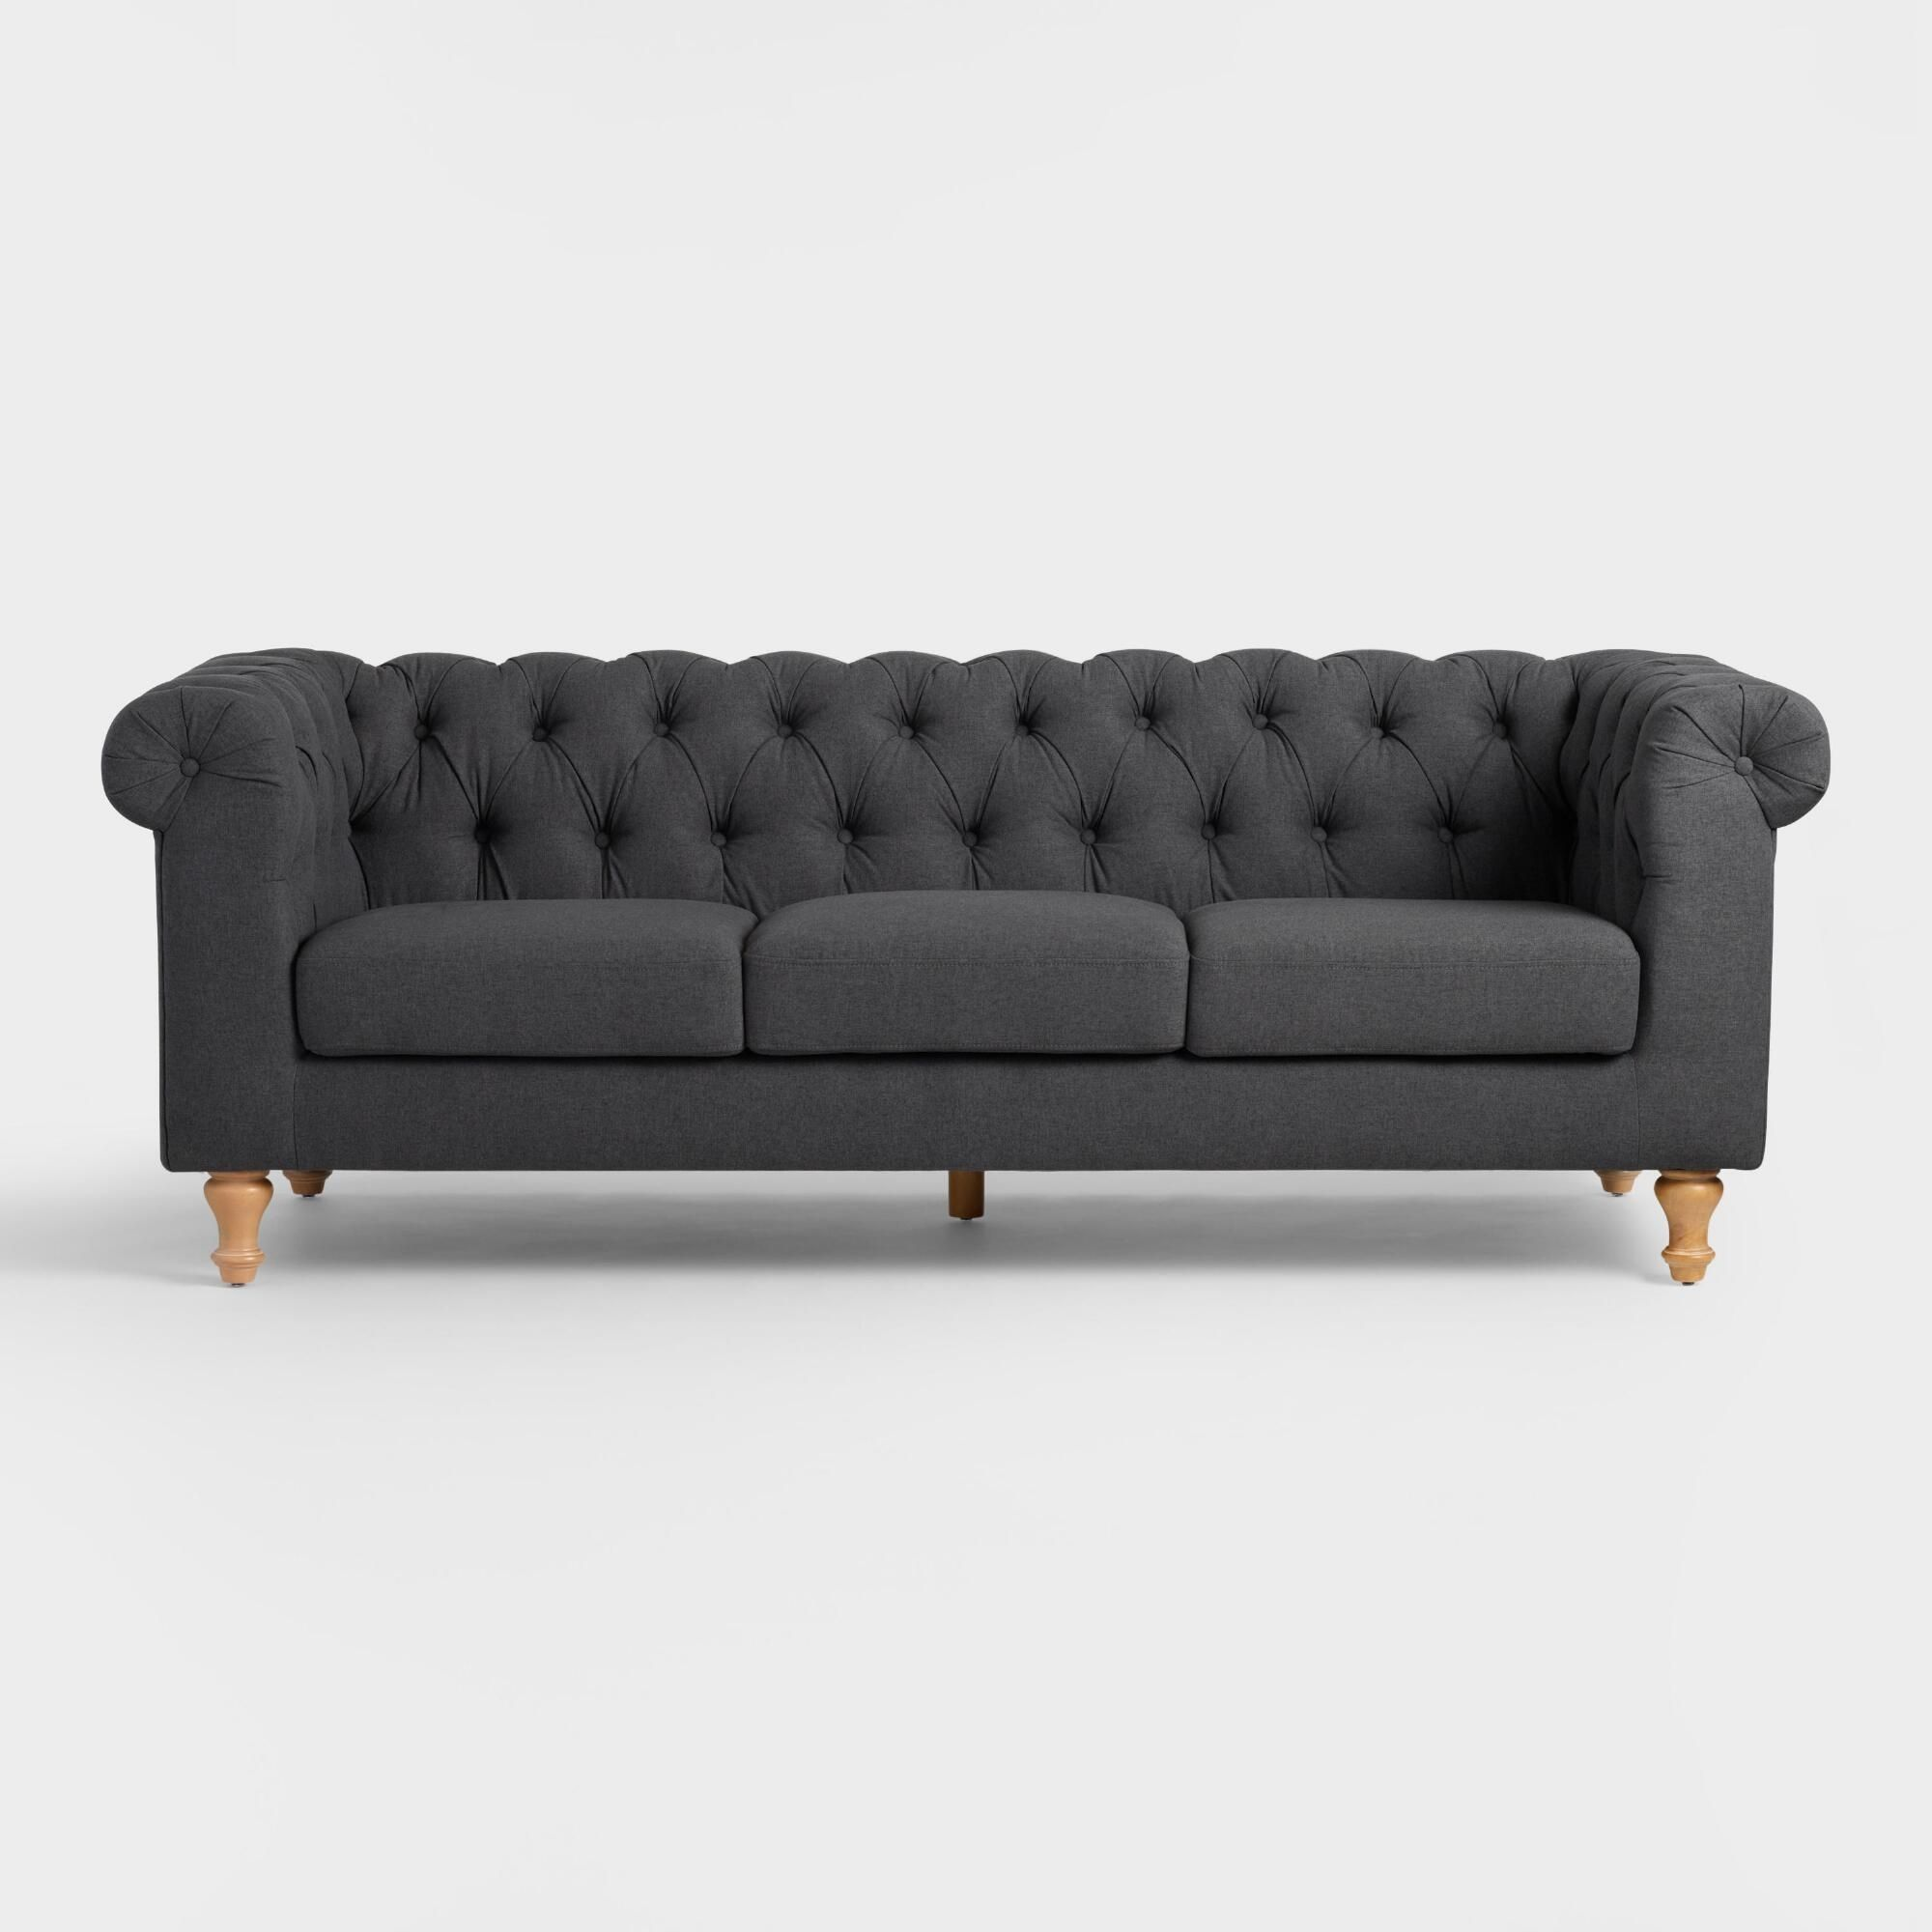 Sofa Beds Under 200 With Images Chesterfield Sofa Living Room Sofa Chesterfield Sofa